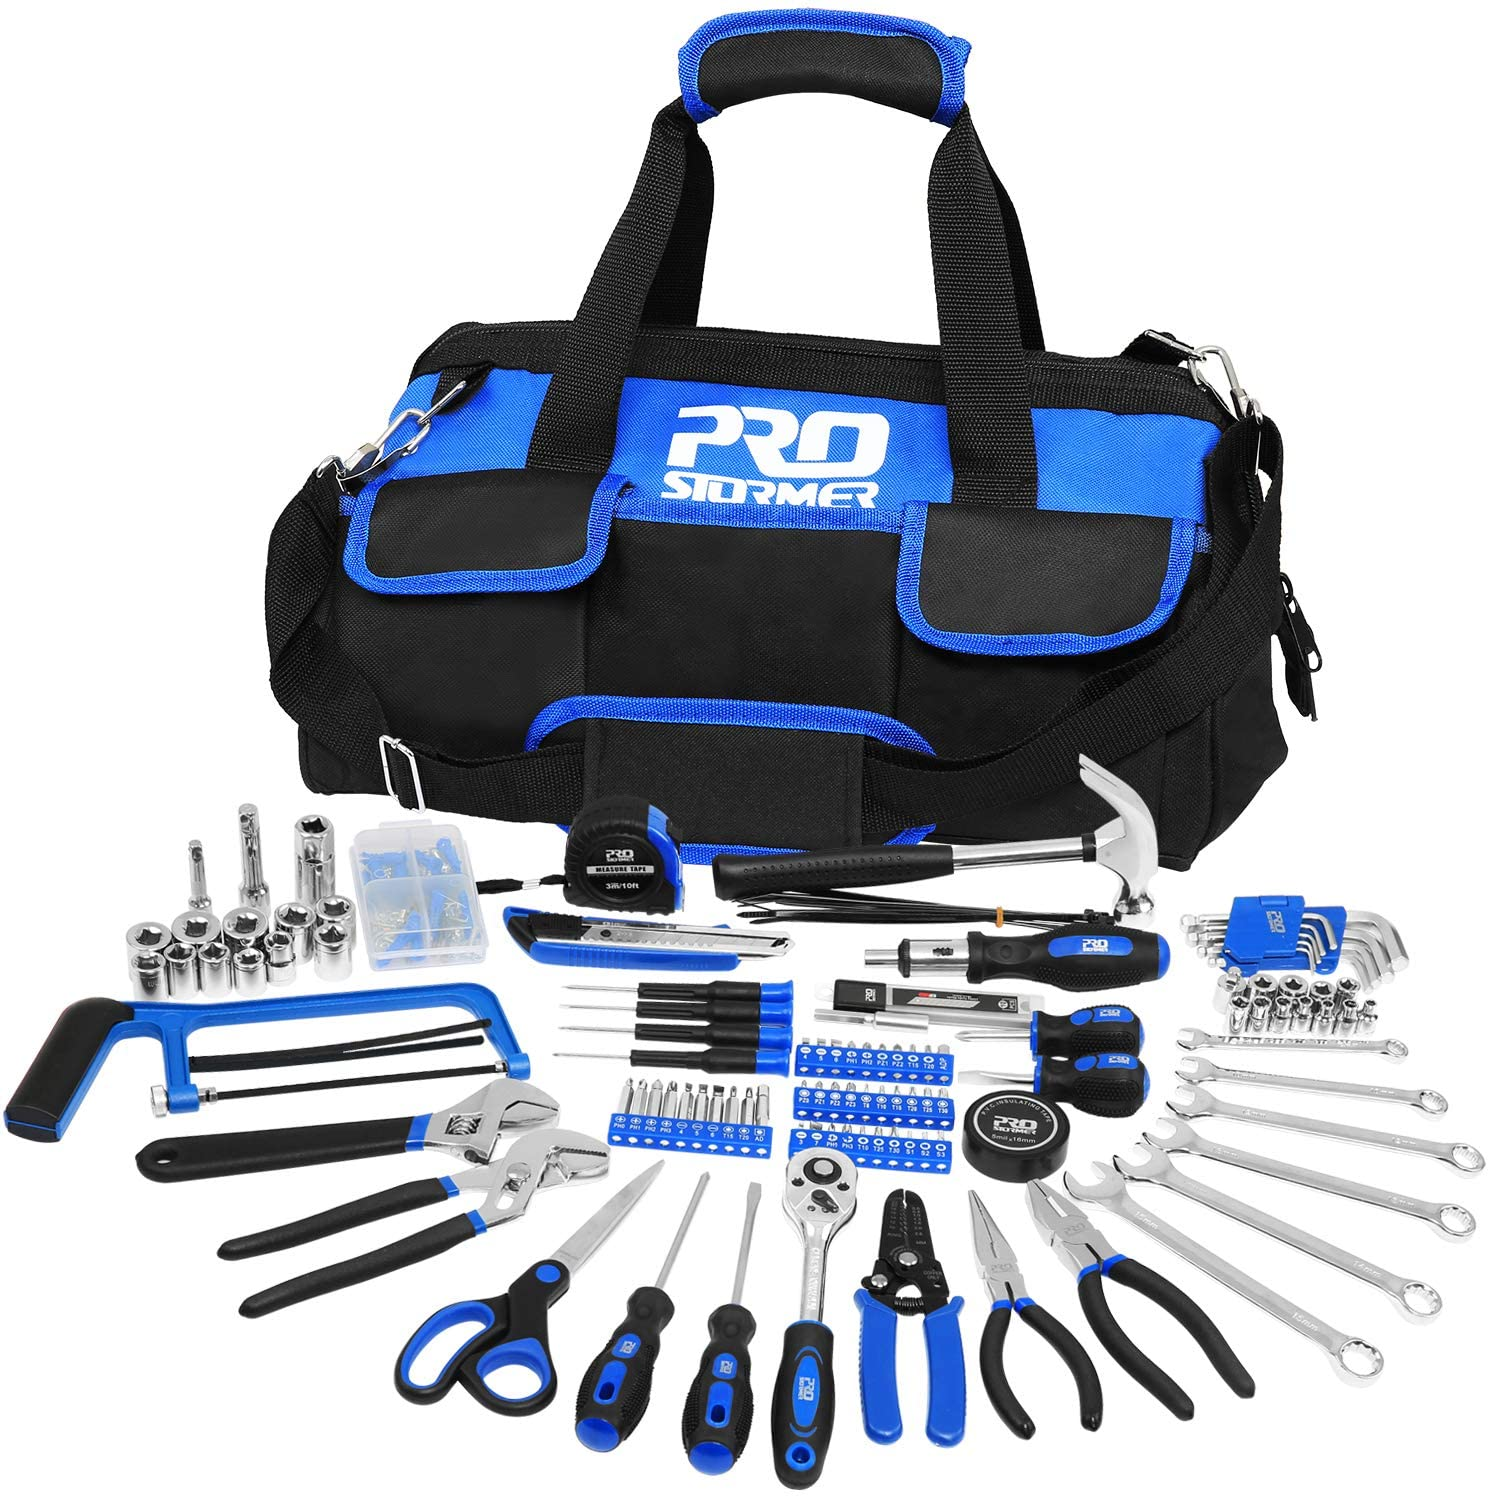 198-Piece General Household Hand Tool Set, PROSTORMER Multi-Purpose Home Repairing Tool Kit with Easy Carrying Tools Bag for DIY and Home Maintenance